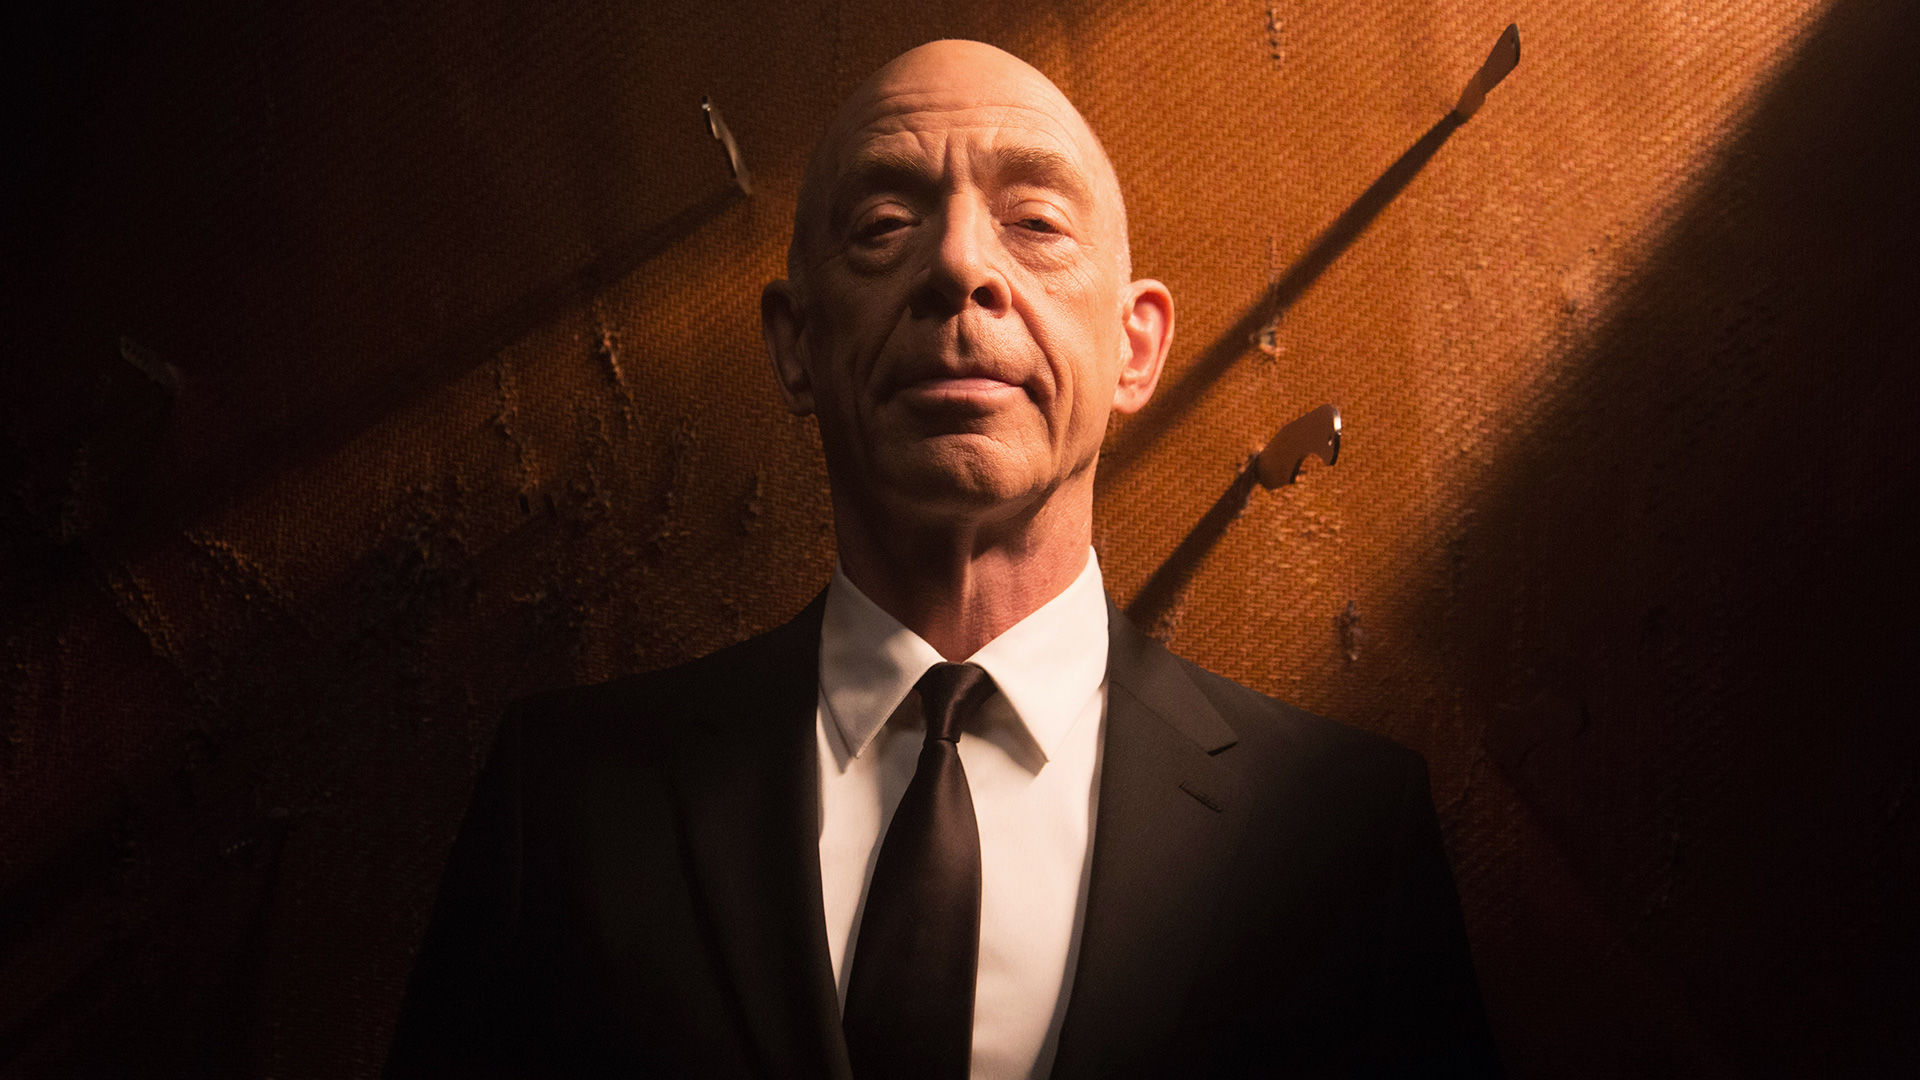 Prada Delivery Man Film Series with J.K. Simmons